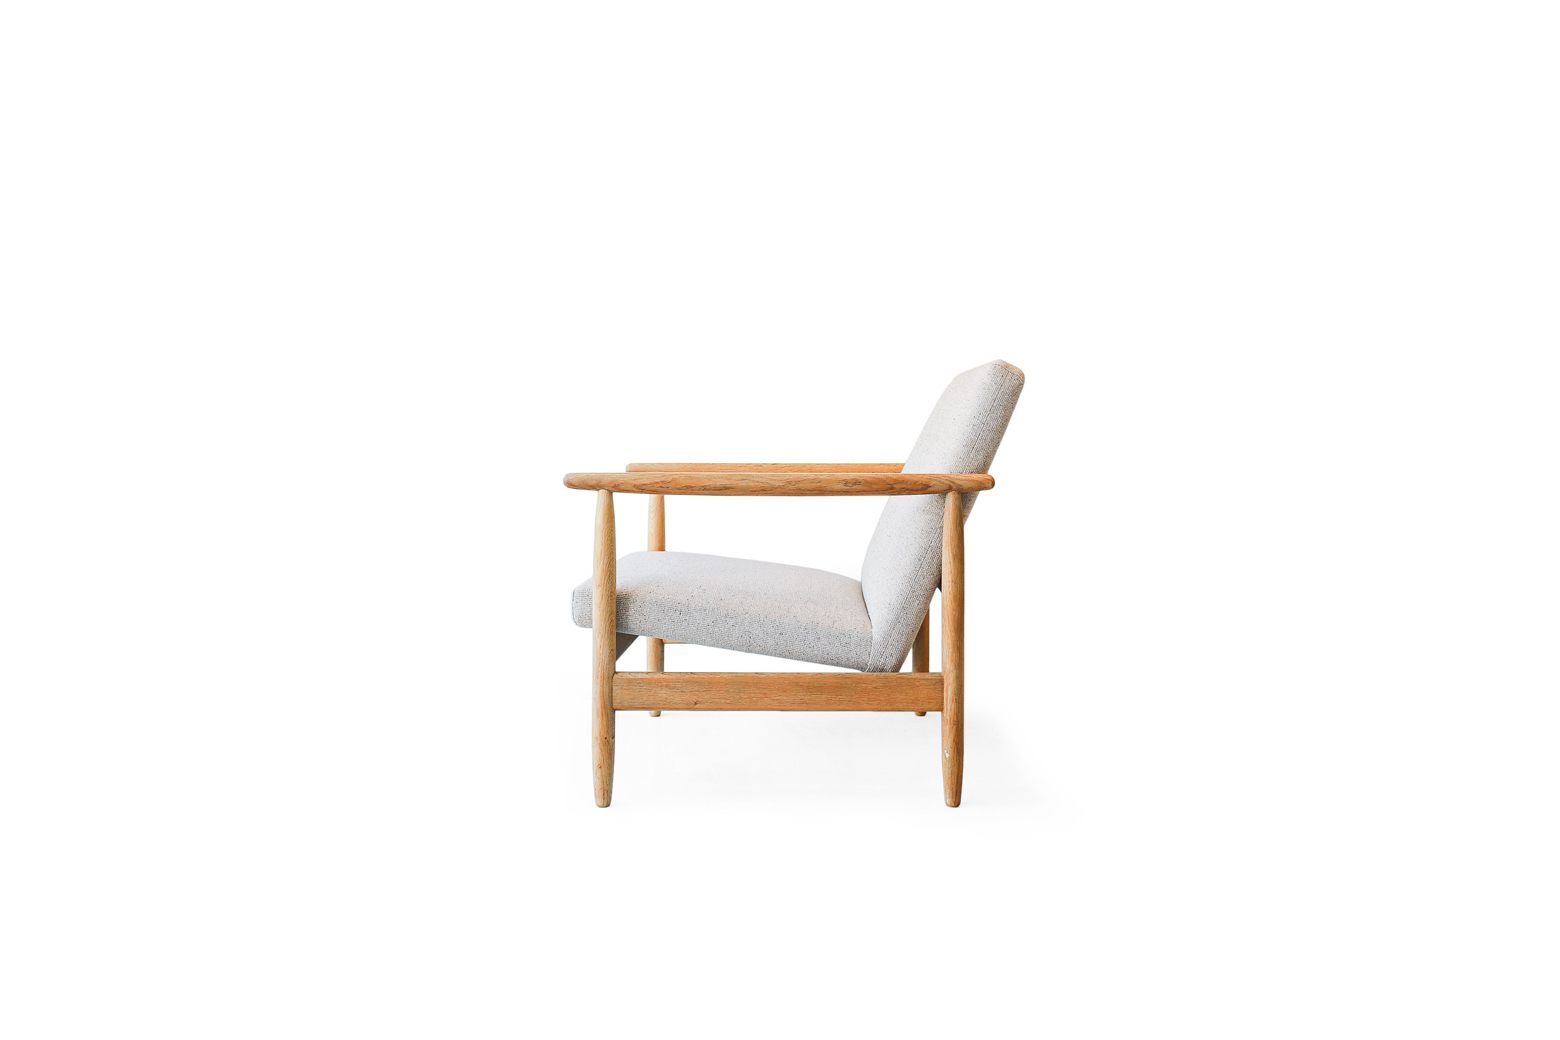 FDB Møbler Easy Chair Model J-65 by Ejvind A. Johansson/デンマークヴィンテージ イージーチェア 1Pソファ アイヴァン・A・ヨハンソン 北欧家具